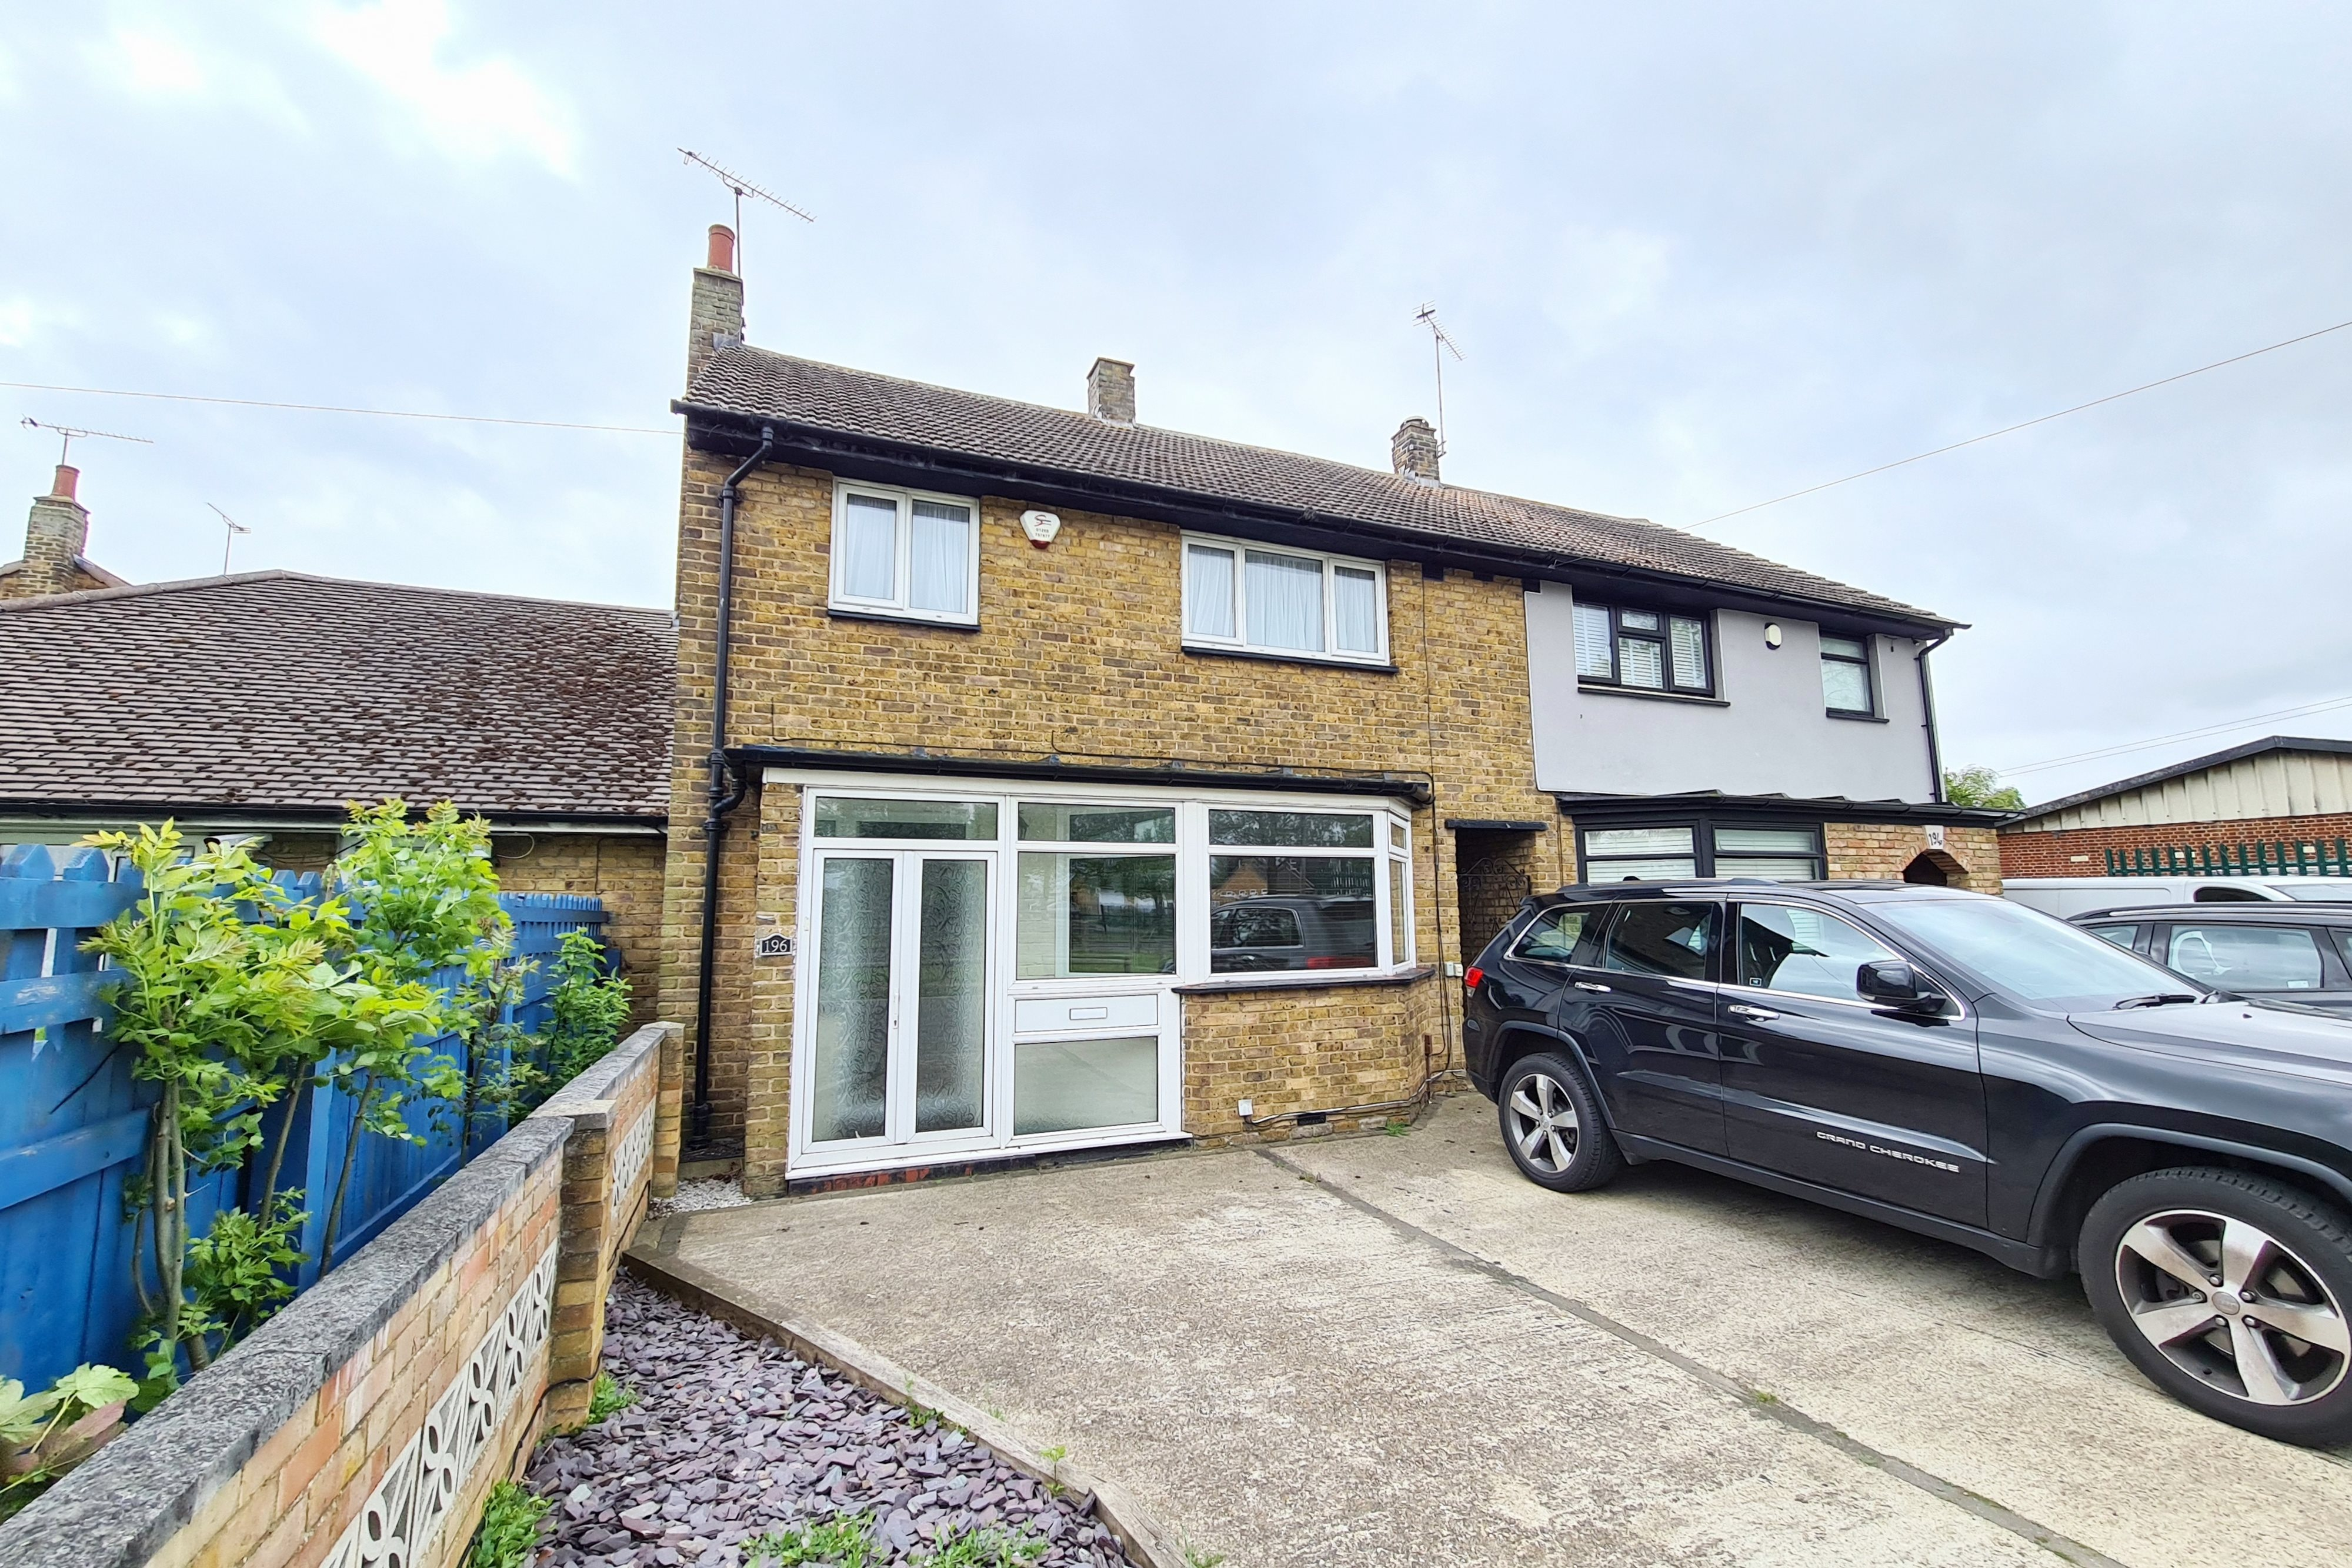 3 bed terraced house to rent in Eastern Avenue, Southend-on-Sea, SS2